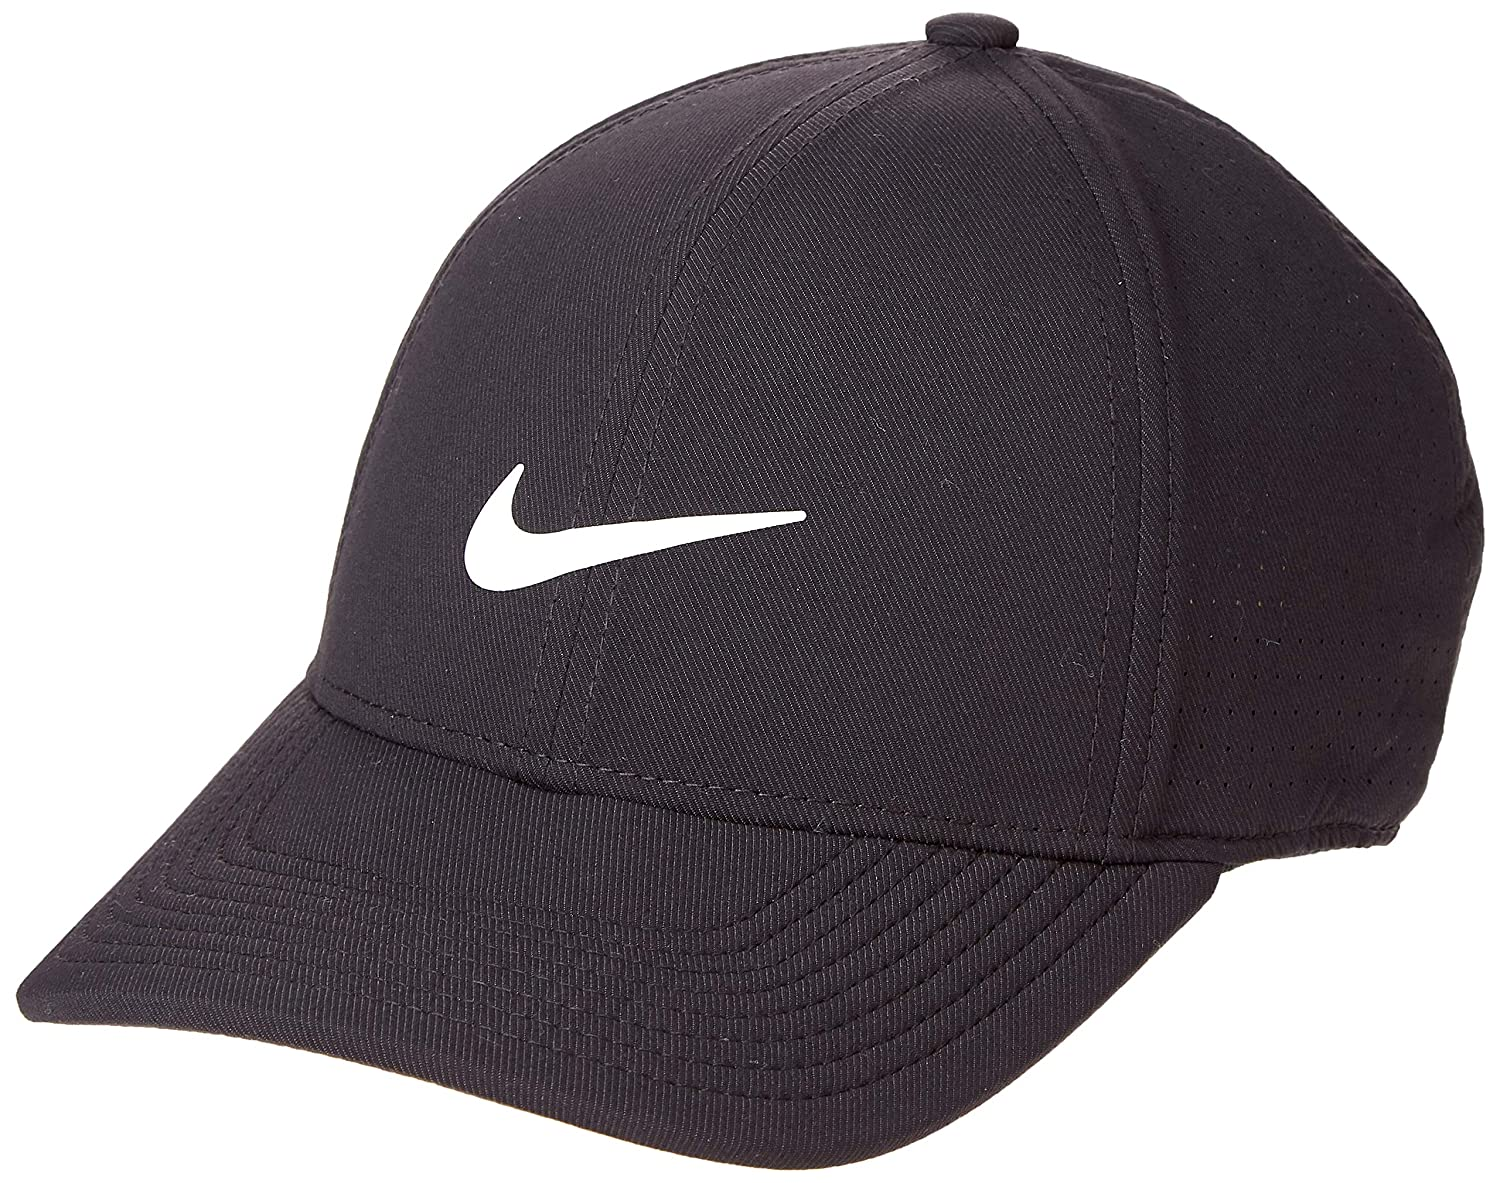 adc9e4d455a Amazon.com  NIKE AeroBill Legacy 91 Performance Statement Golf Cap 2018   Sports   Outdoors